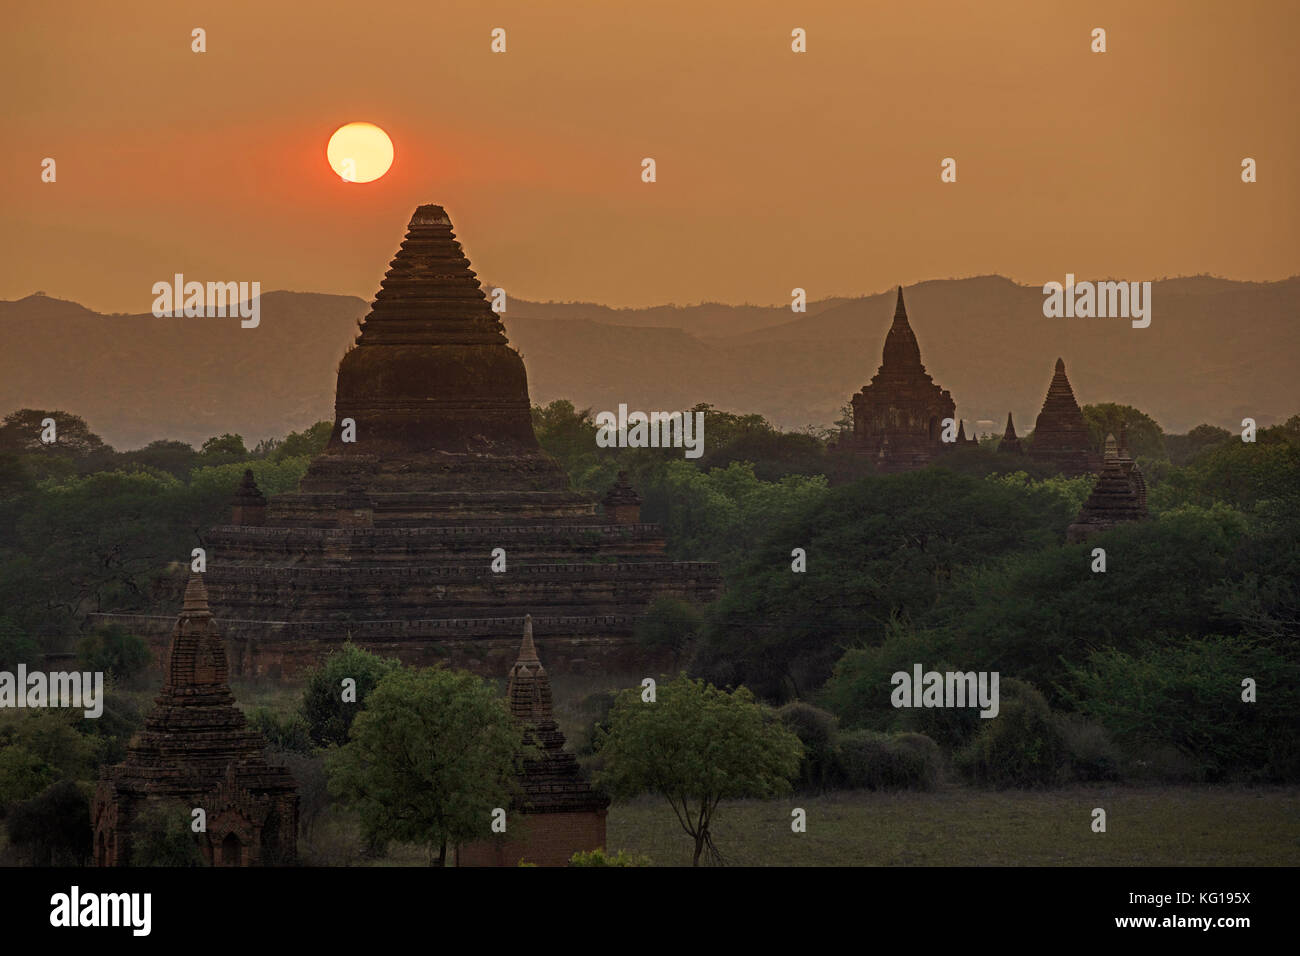 Buddhist temples and pagodas at sunset in the ancient city Bagan / Pagan, Mandalay Region, Myanmar / Burma Stock Photo